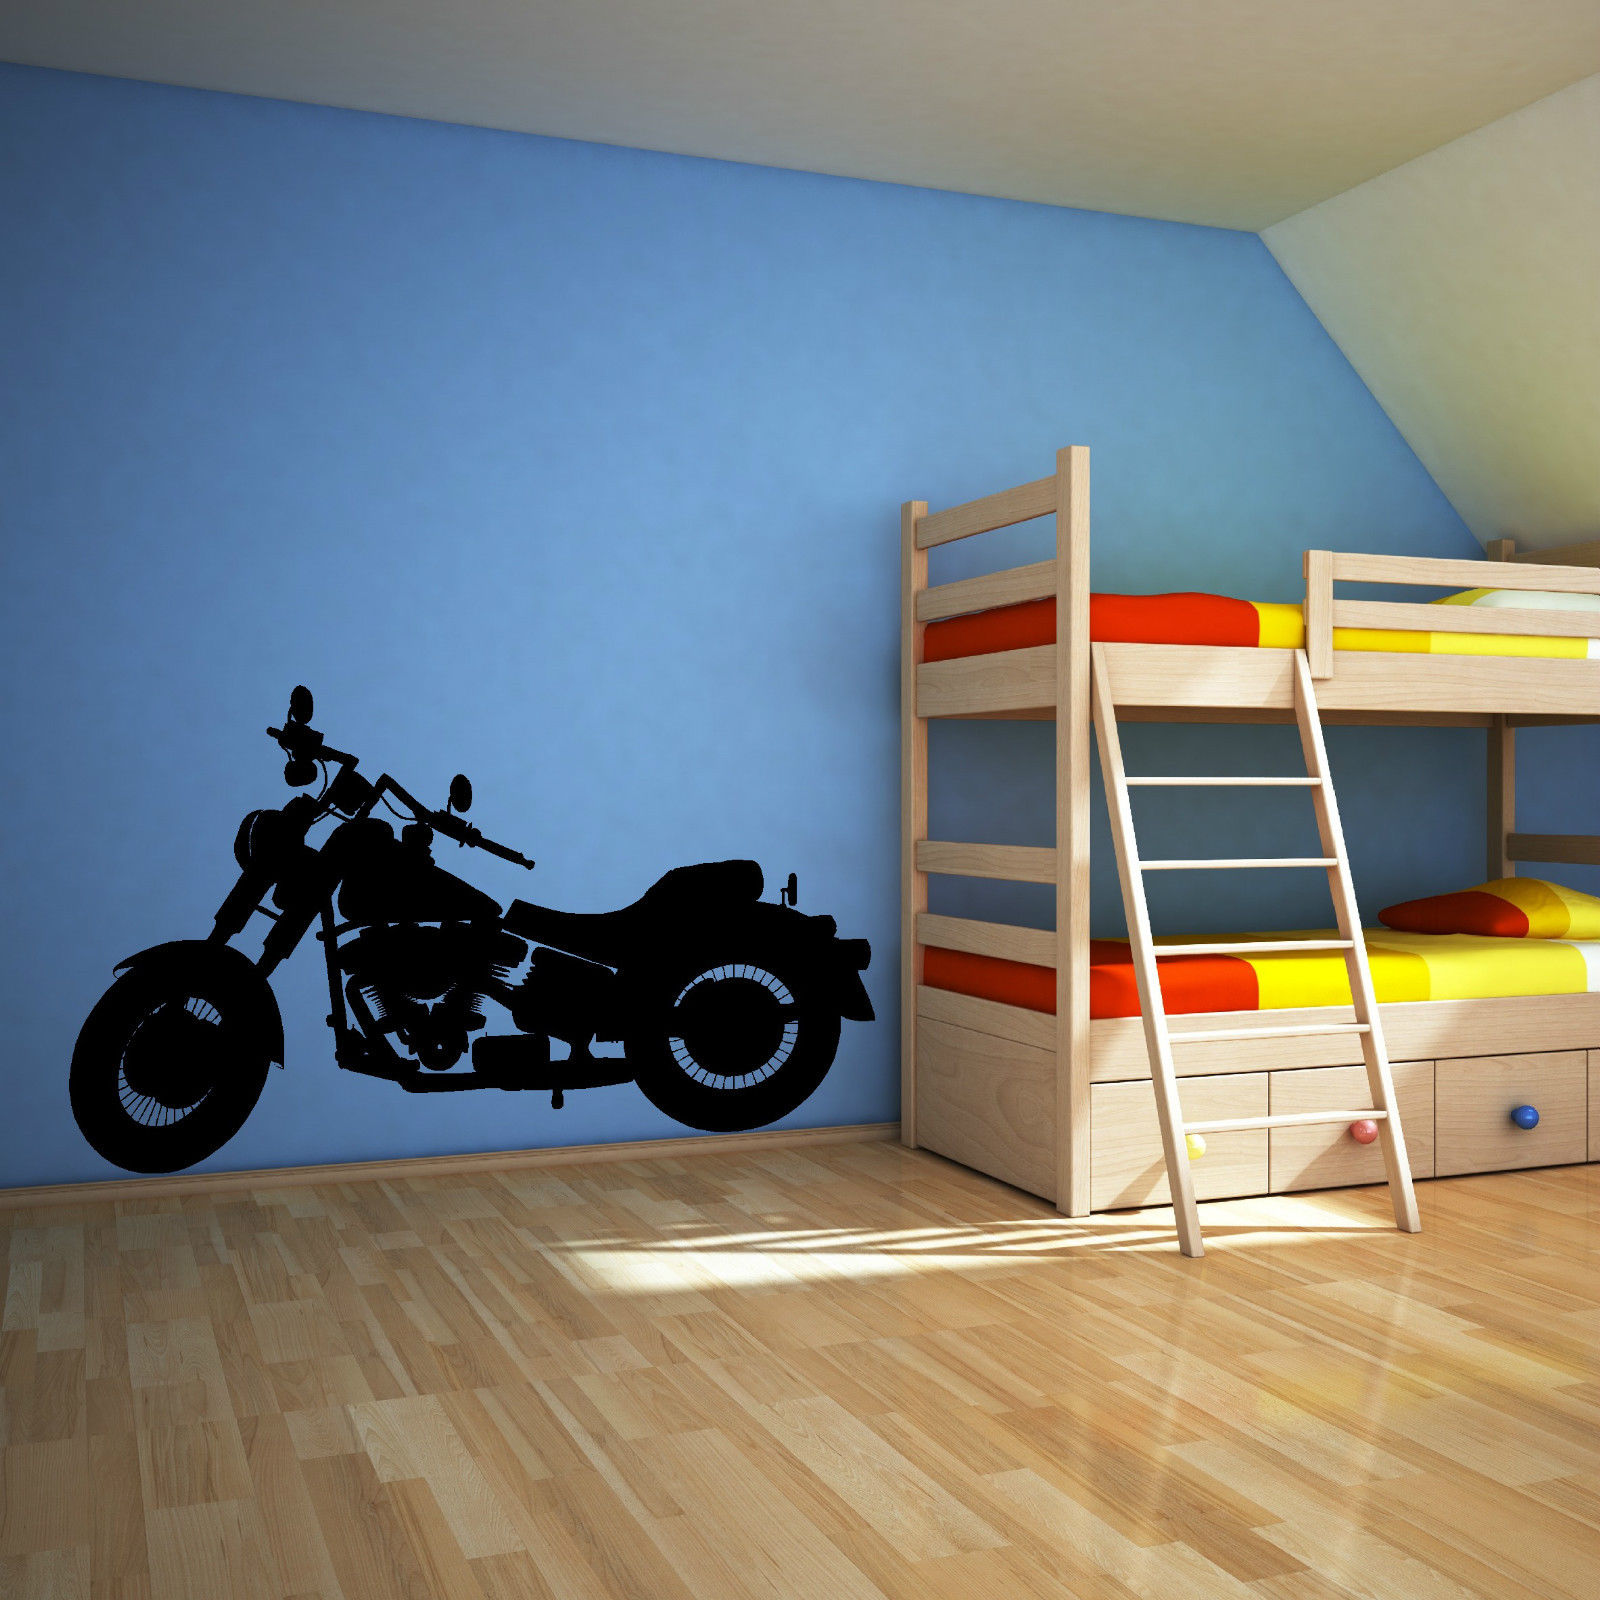 Attractive Aliexpress.com: Compre G142 HARLEY DAVIDSON MOTO CHOPPER Vinyl Wall Art Sticker  Decal Crianças Quarto Adesivos De Parede Decoração Mural Para Decoração De  ... Part 23